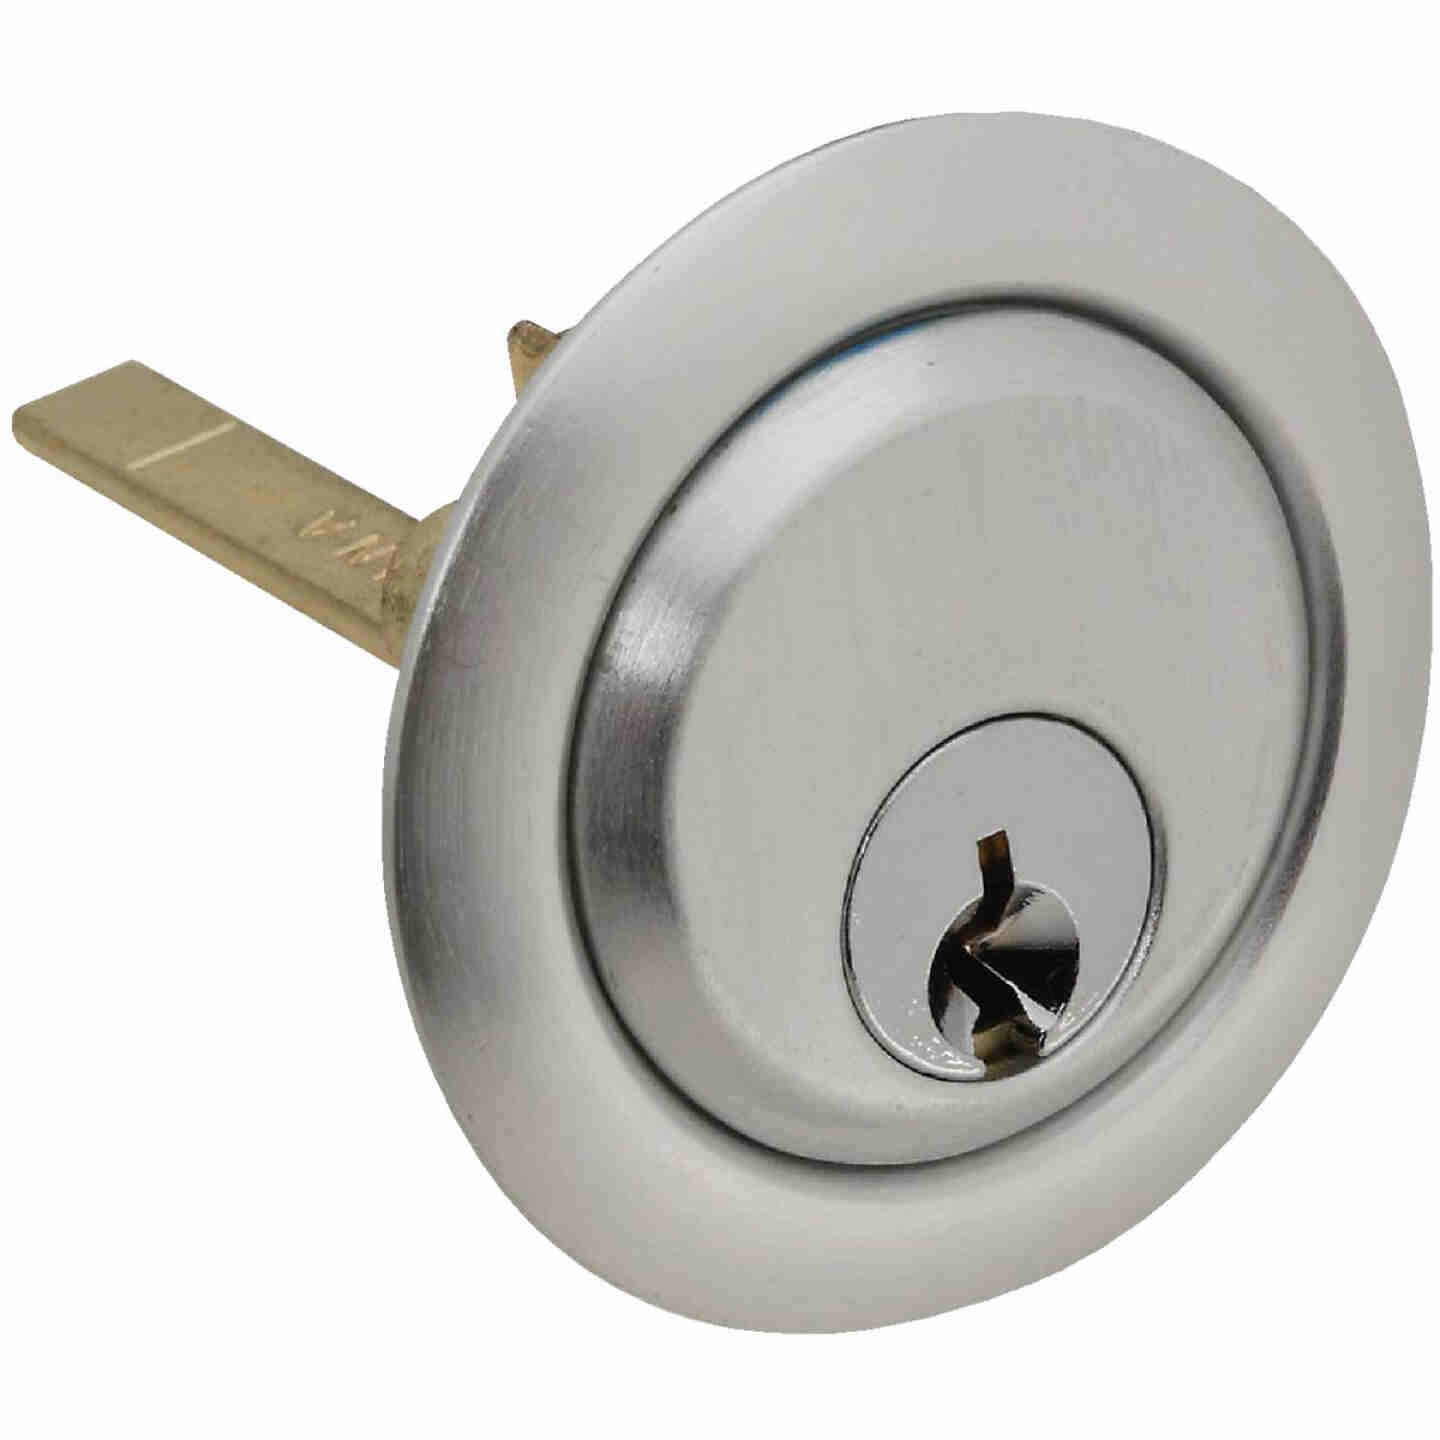 Prime-Line 5-Pin Brass Diecast Rim Cylinder Lock with Trim Ring Image 1